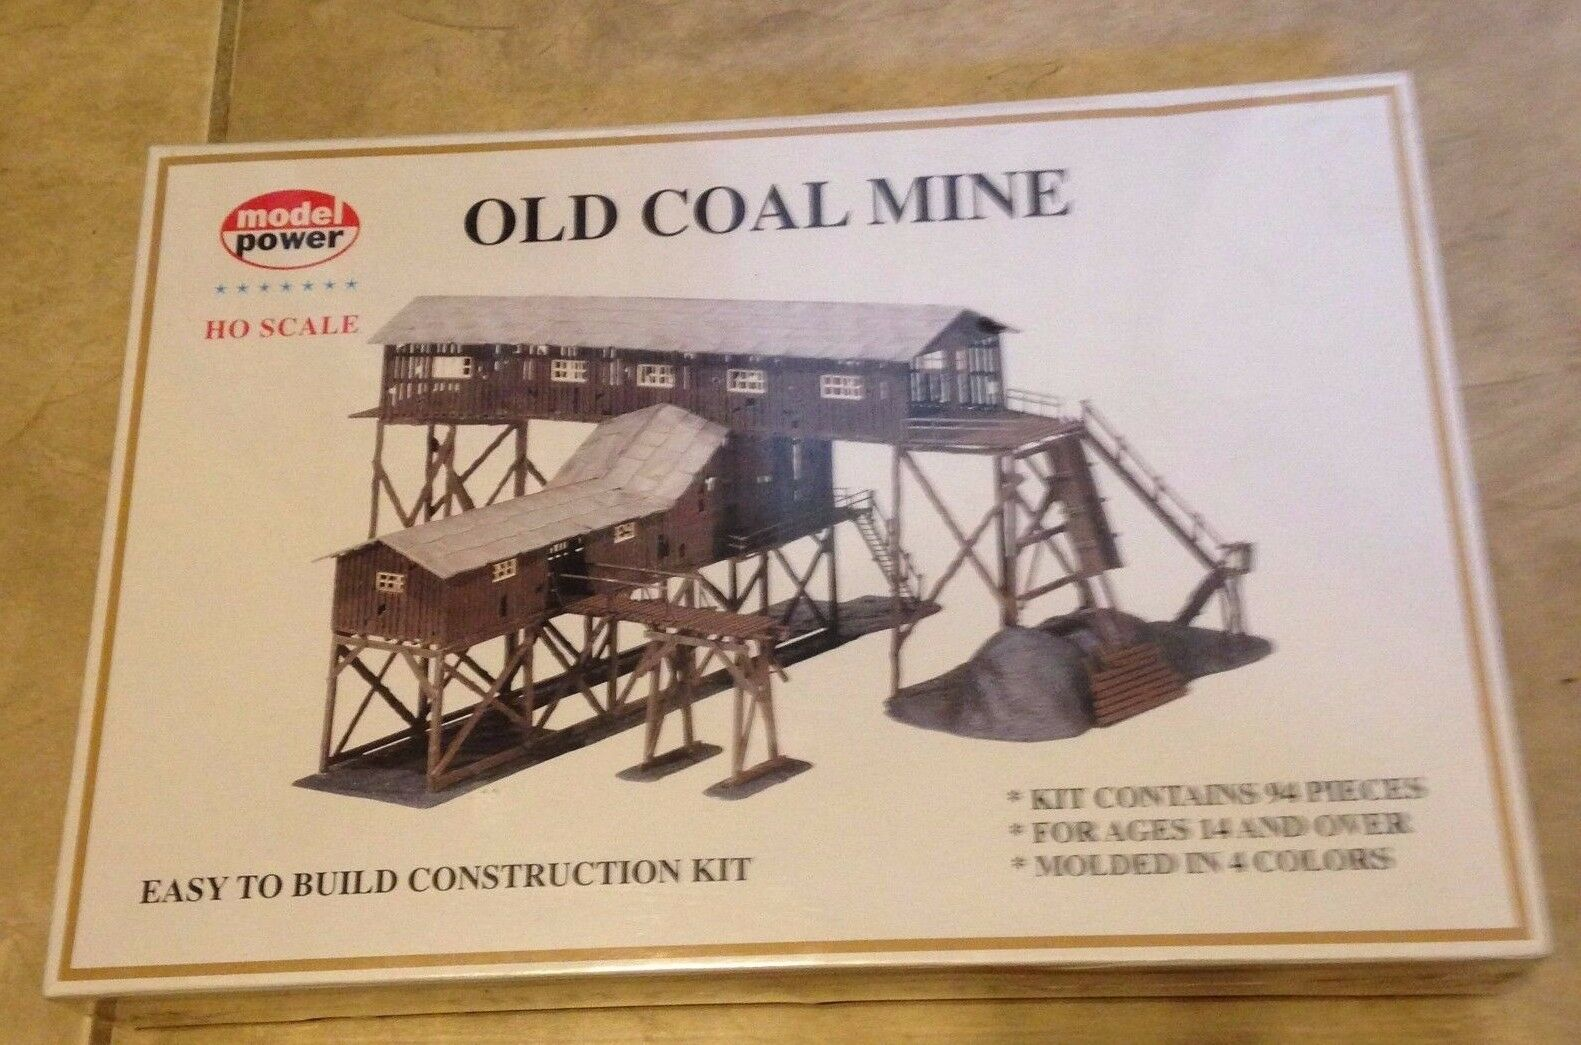 HO Scale-Model Power-316-Old Power-316-Old Power-316-Old Coal Mine Model Kit-94 Pcs Molded in 4 colors NEW 5d5eee